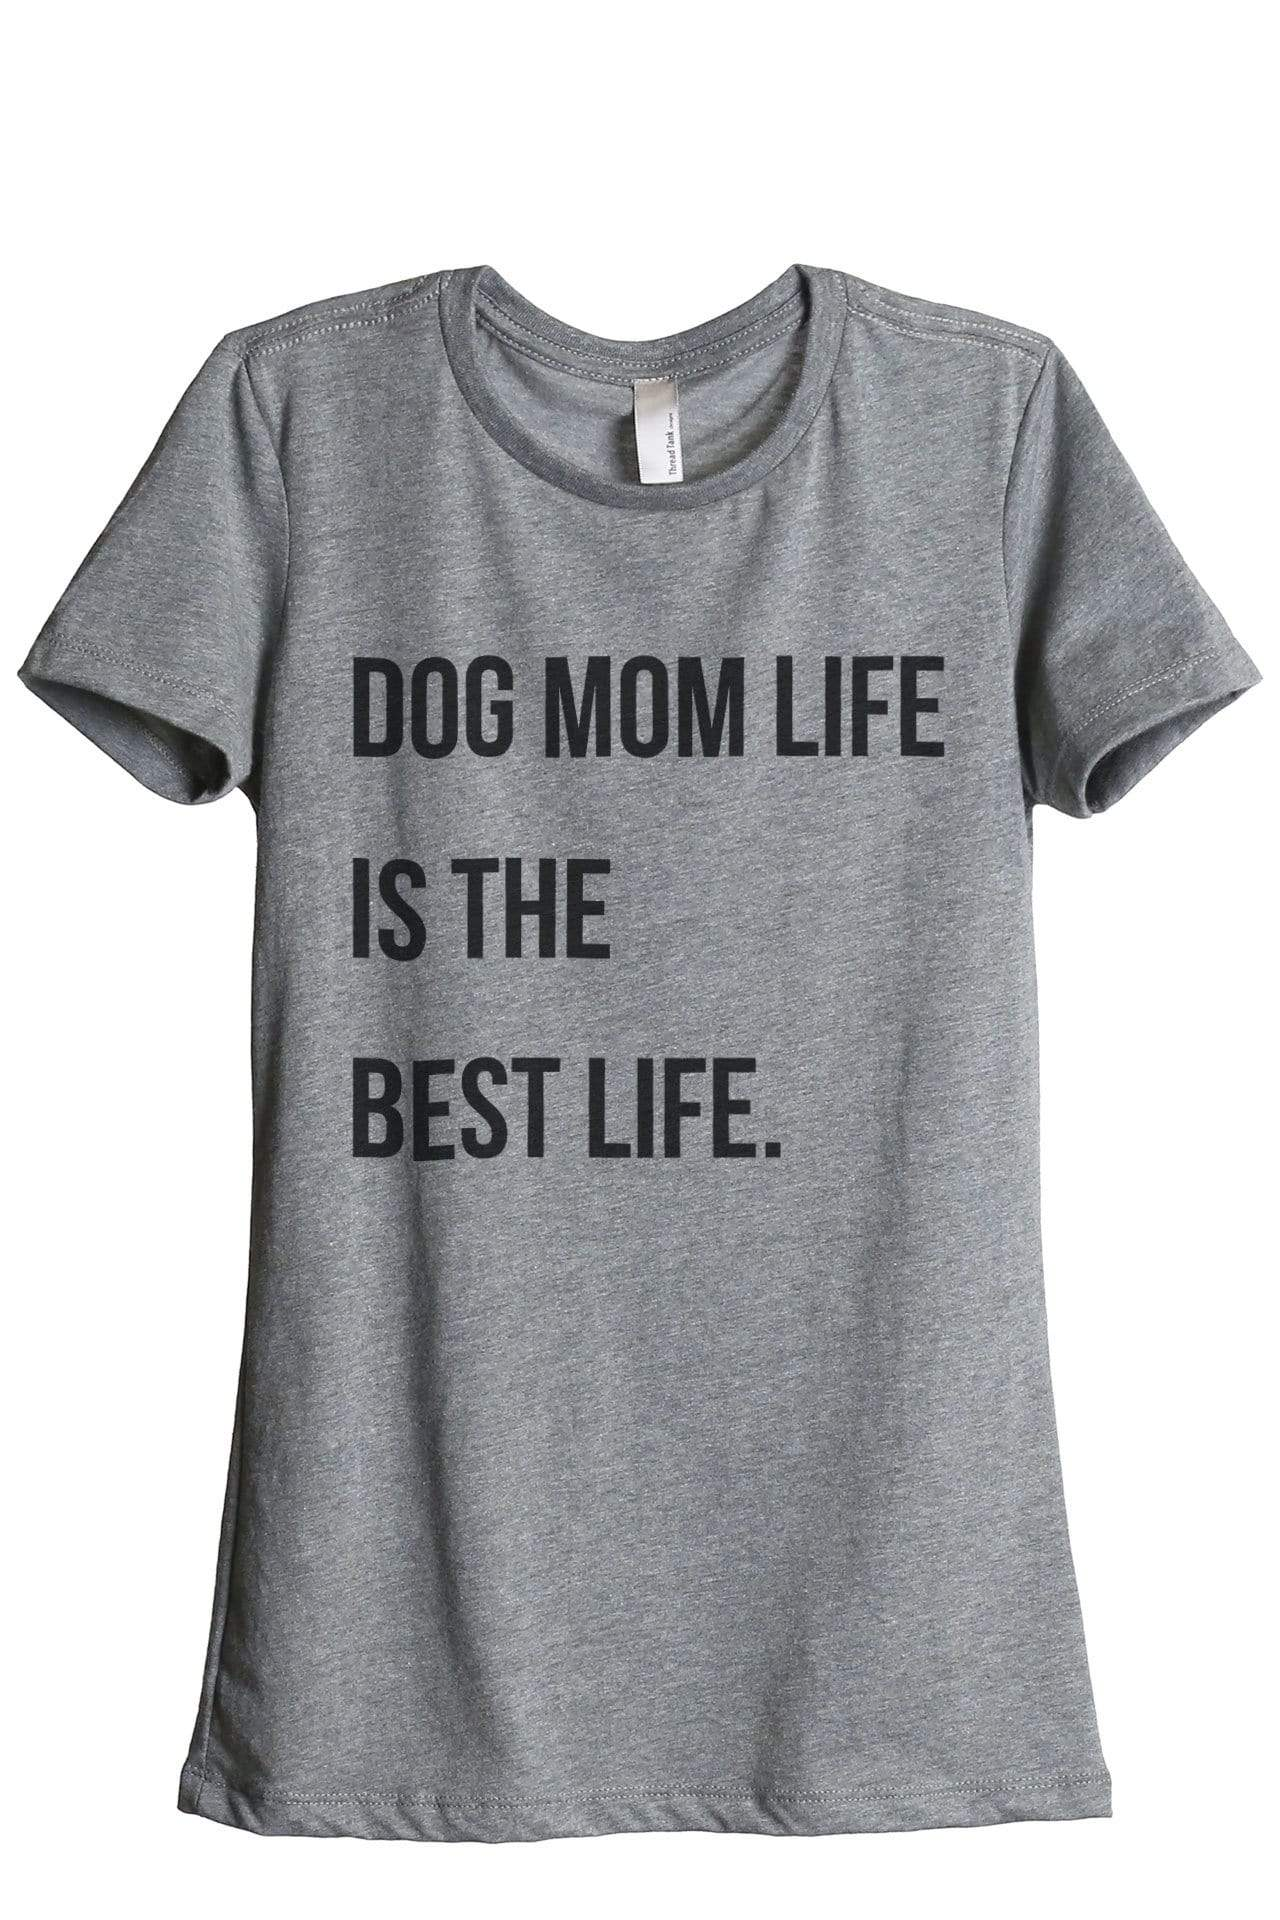 Dog Mom Life Is The Best Life - Thread Tank | Stories You Can Wear | T-Shirts, Tank Tops and Sweatshirts